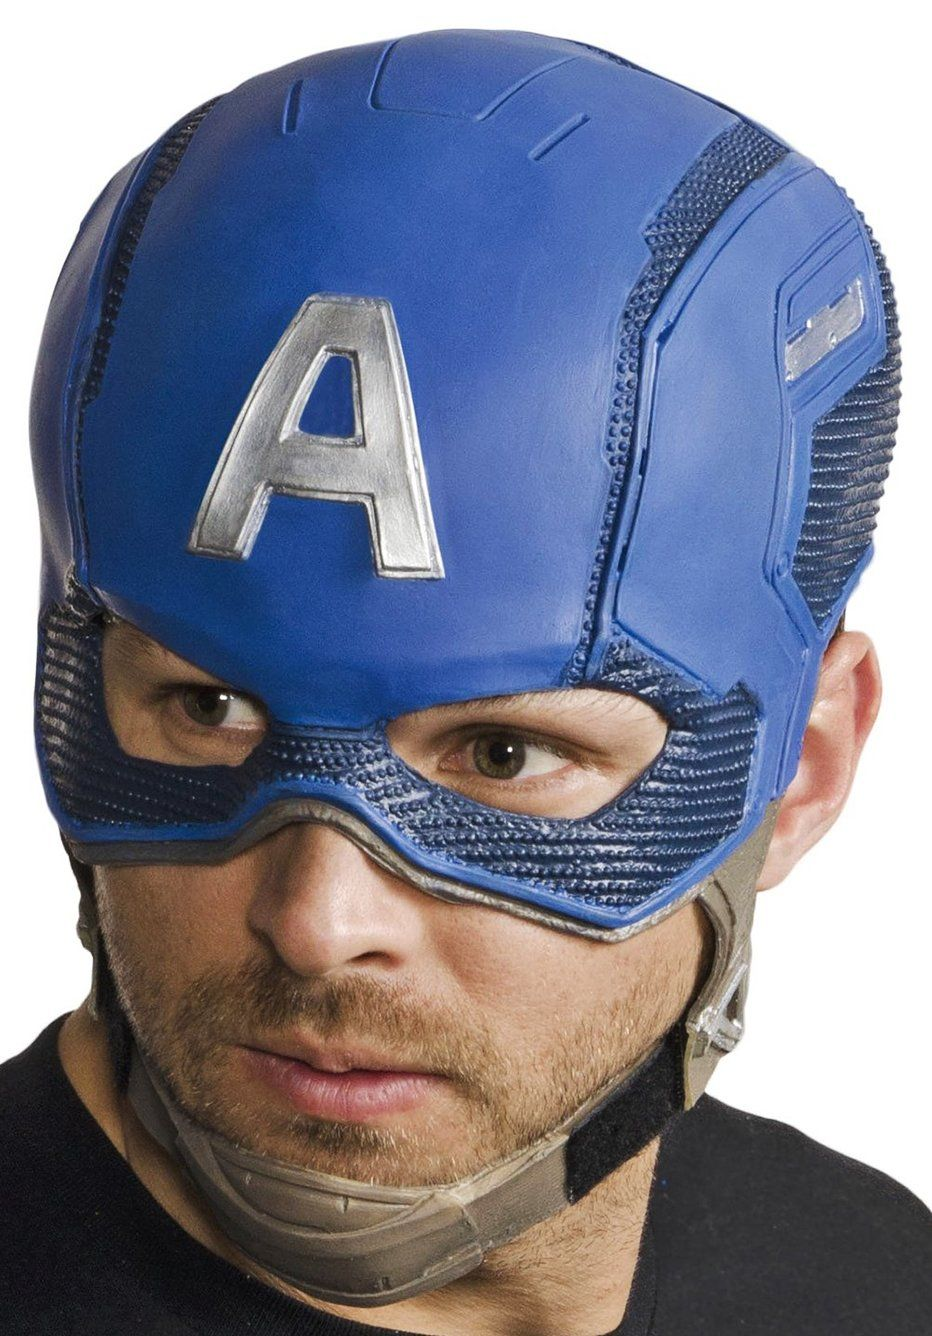 Marvel/'s Captain America Superhero Cosplay Latex Over The Head Mask OSFM Adults